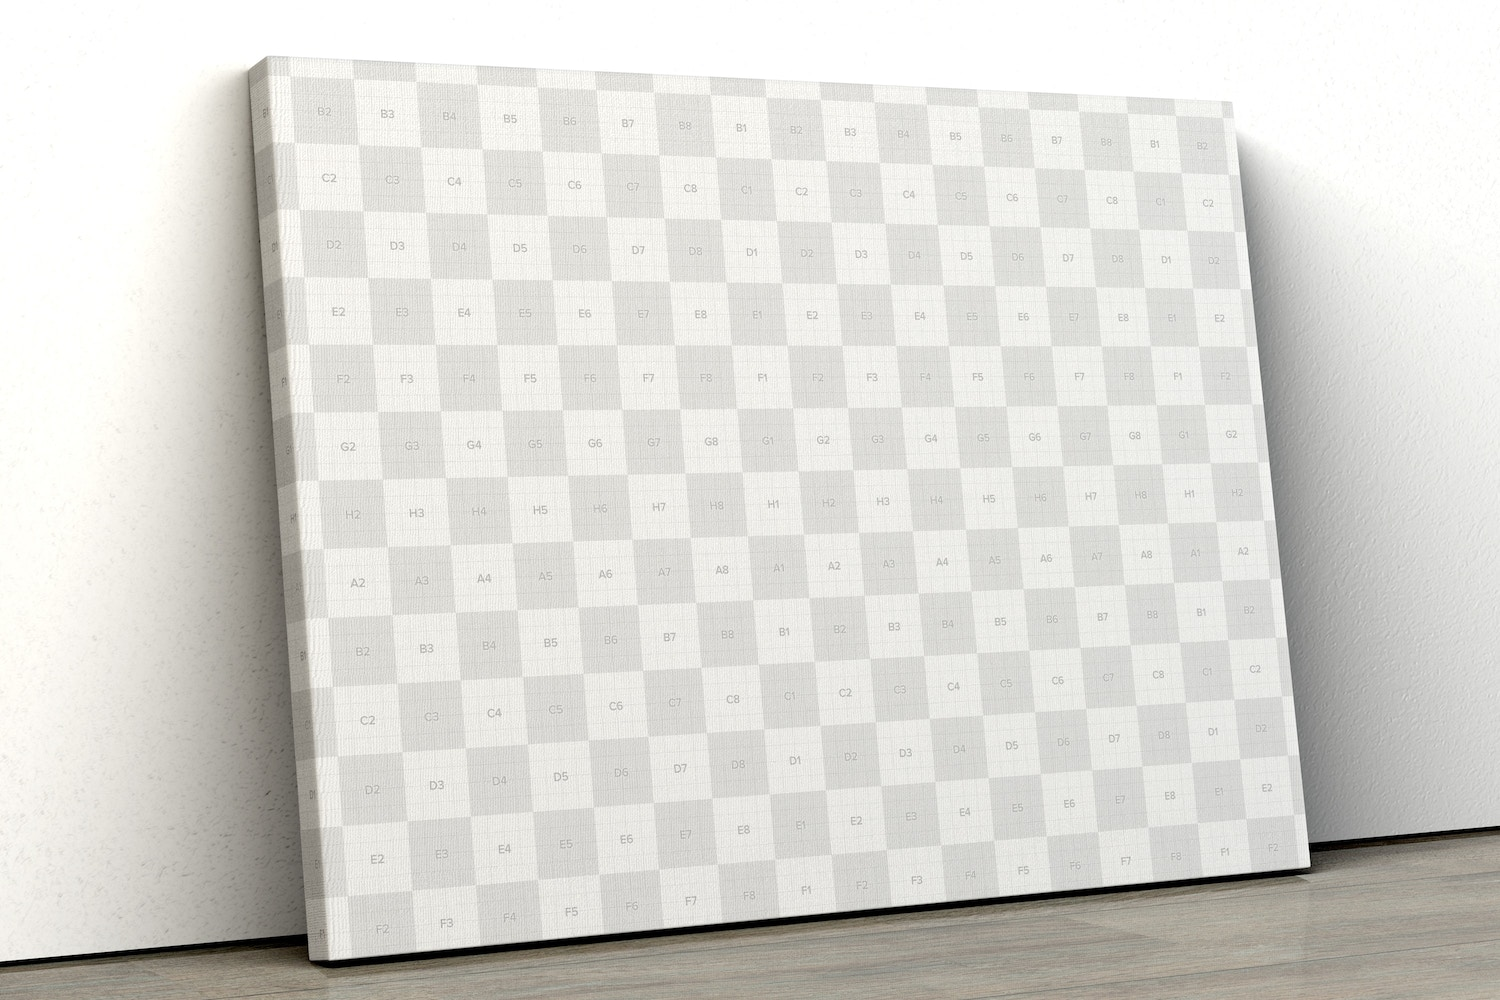 Landscape Canvas Mockup Leaning on Wall